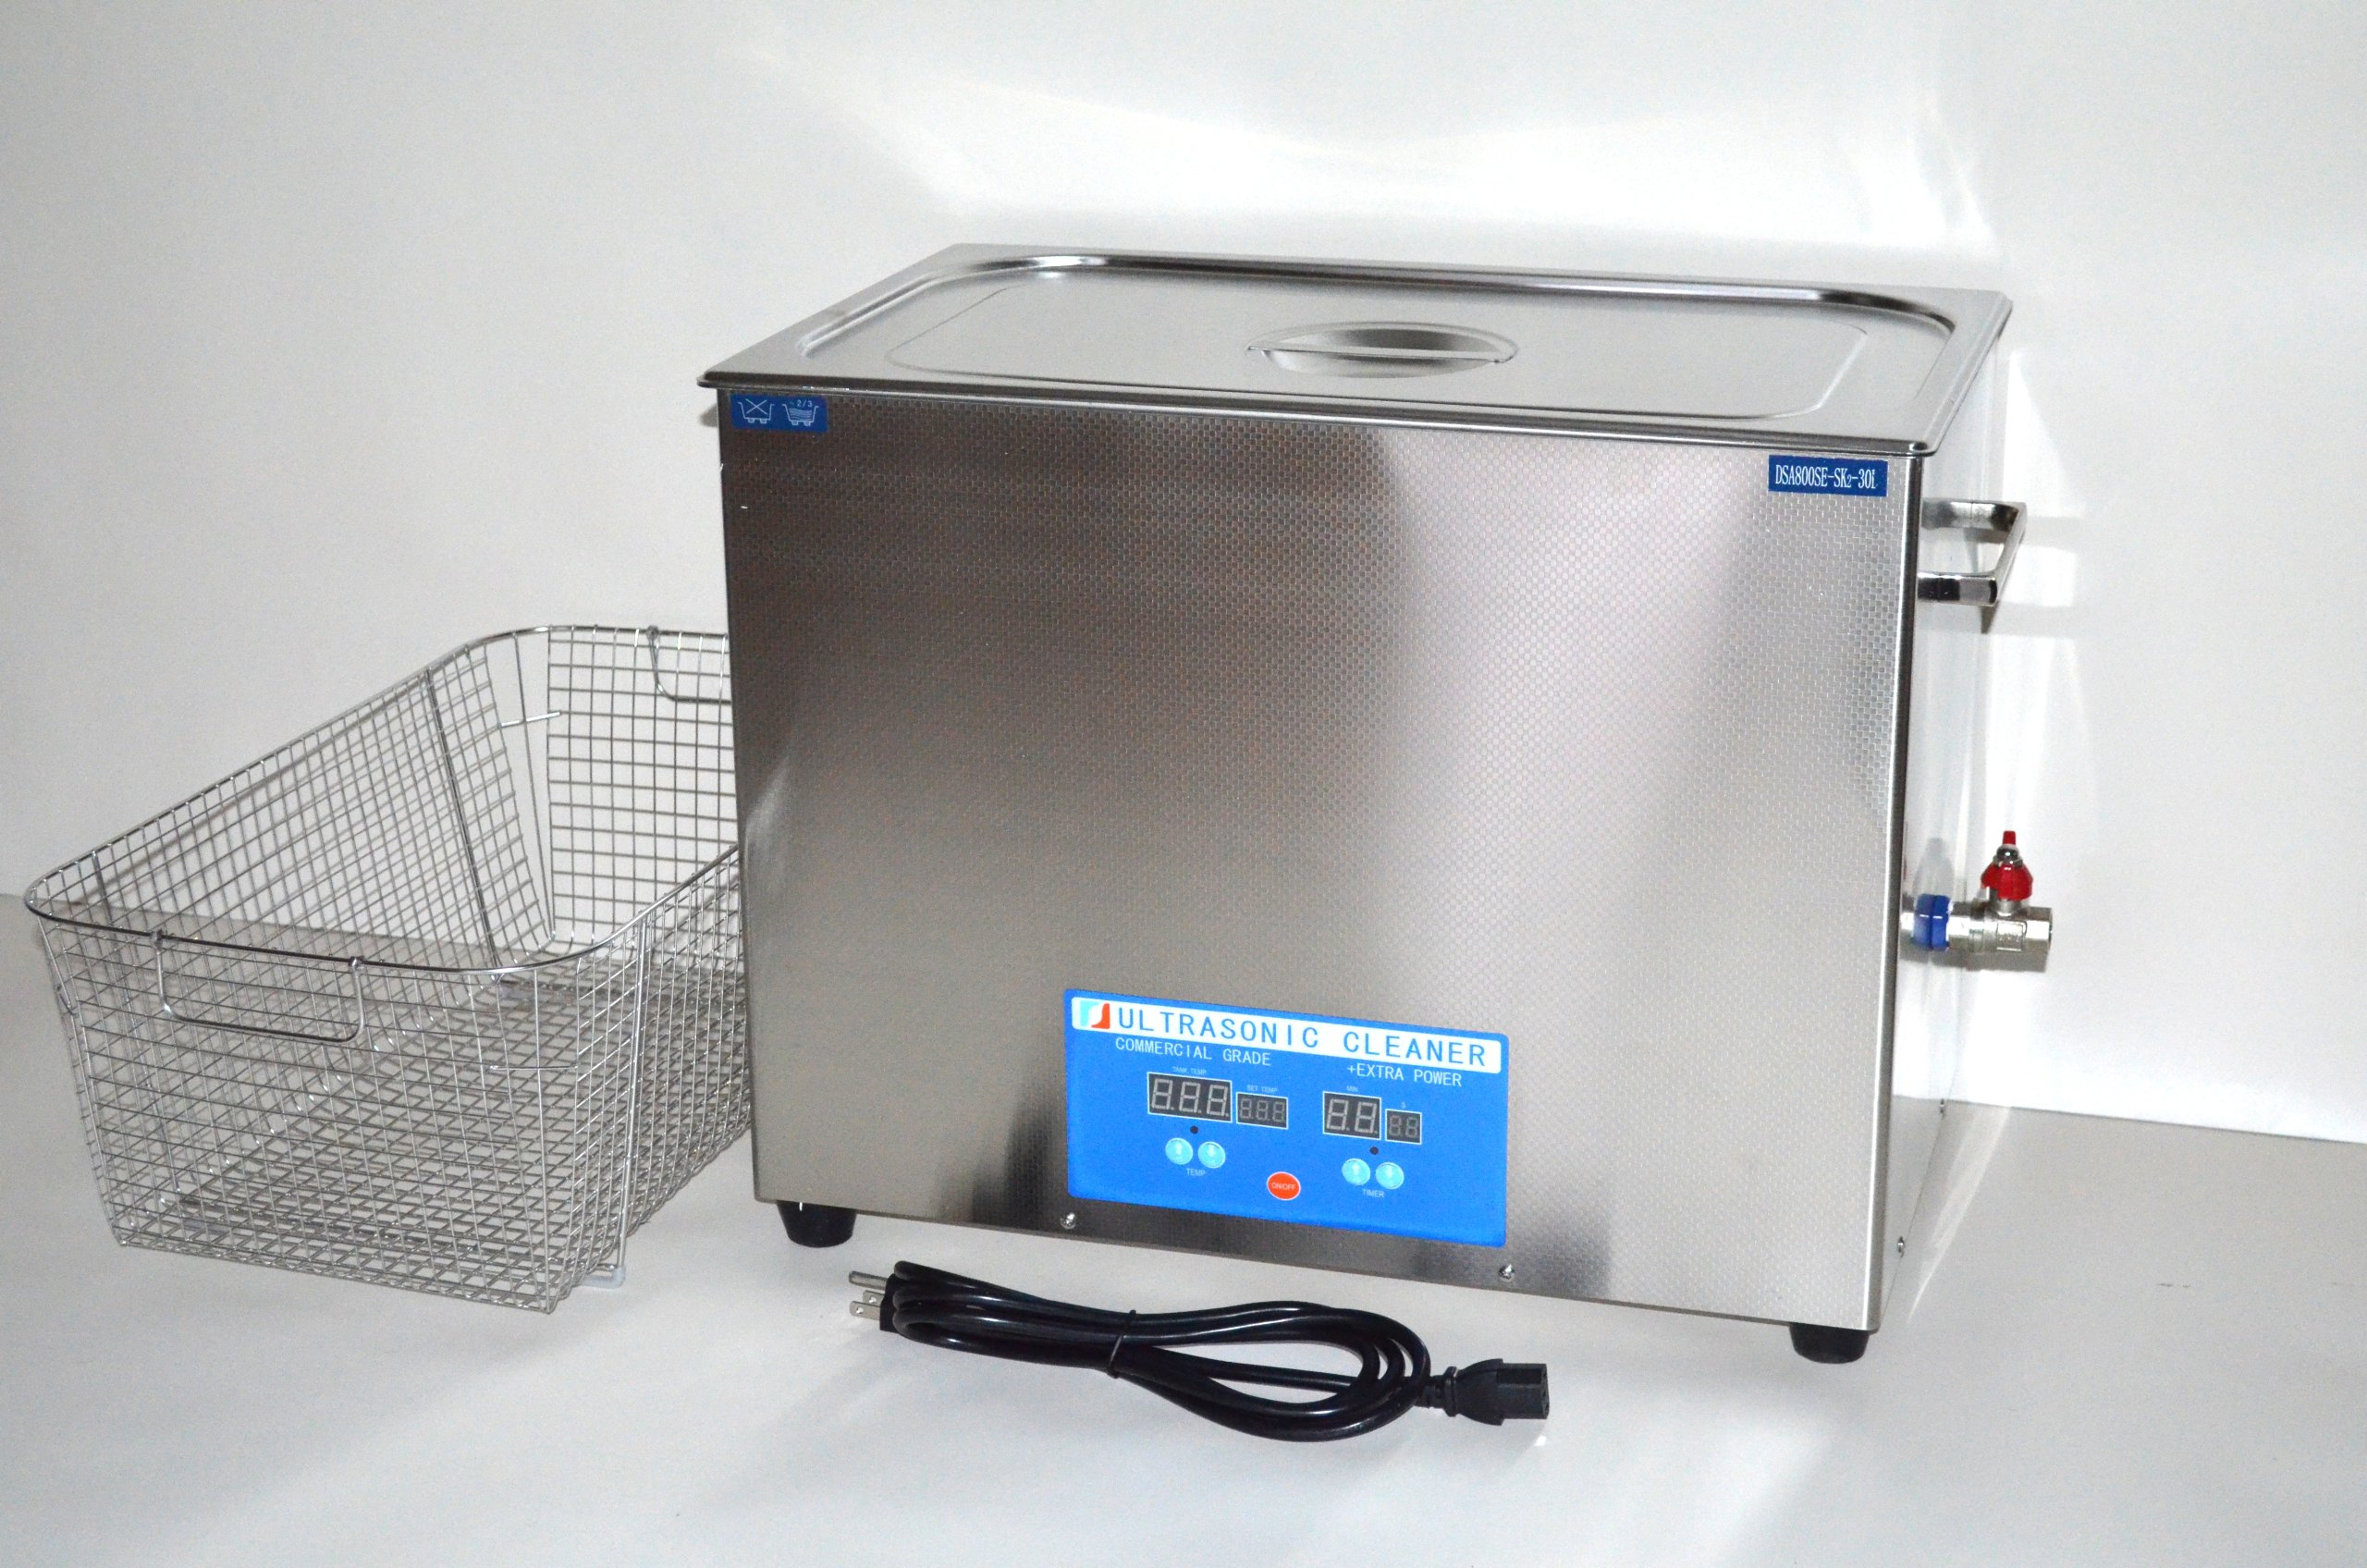 ''COMMERCIAL+ EXTRA POWER'' SERIES DSA800SE-SK2 30L (8 GAL) 1600 WATTS 40KHz DIGITAL HEATED INDUSTRIAL STAINLESS STEEL ULTRASONIC PARTS CLEANER MACHINE WITH INBOARD BASKET AND TOP COVER LID by Desen Precision Instruments Co (Image #1)